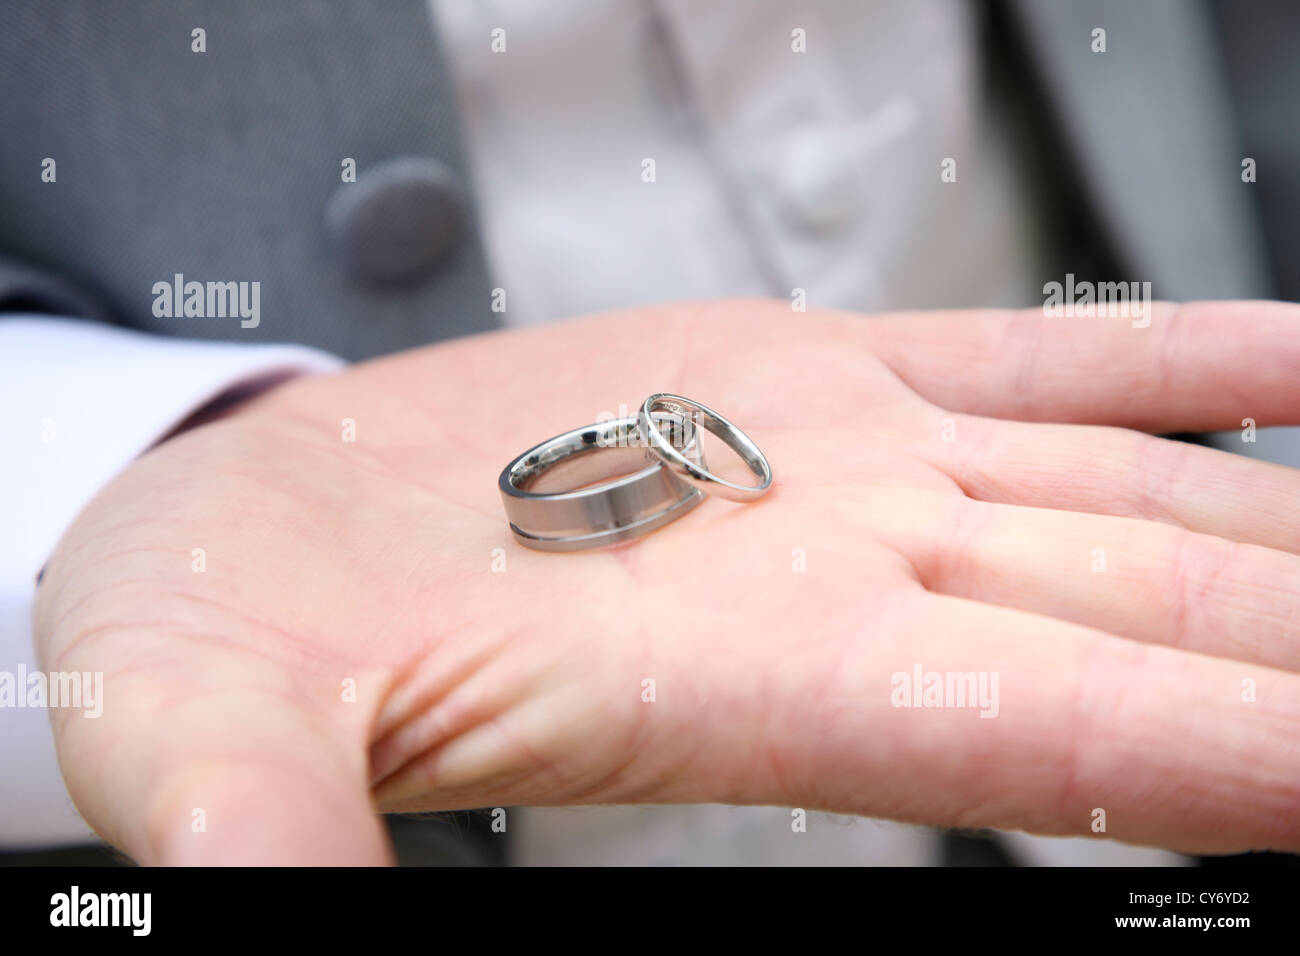 Bestman holding wedding rings in palm of hand on wedding day Stock